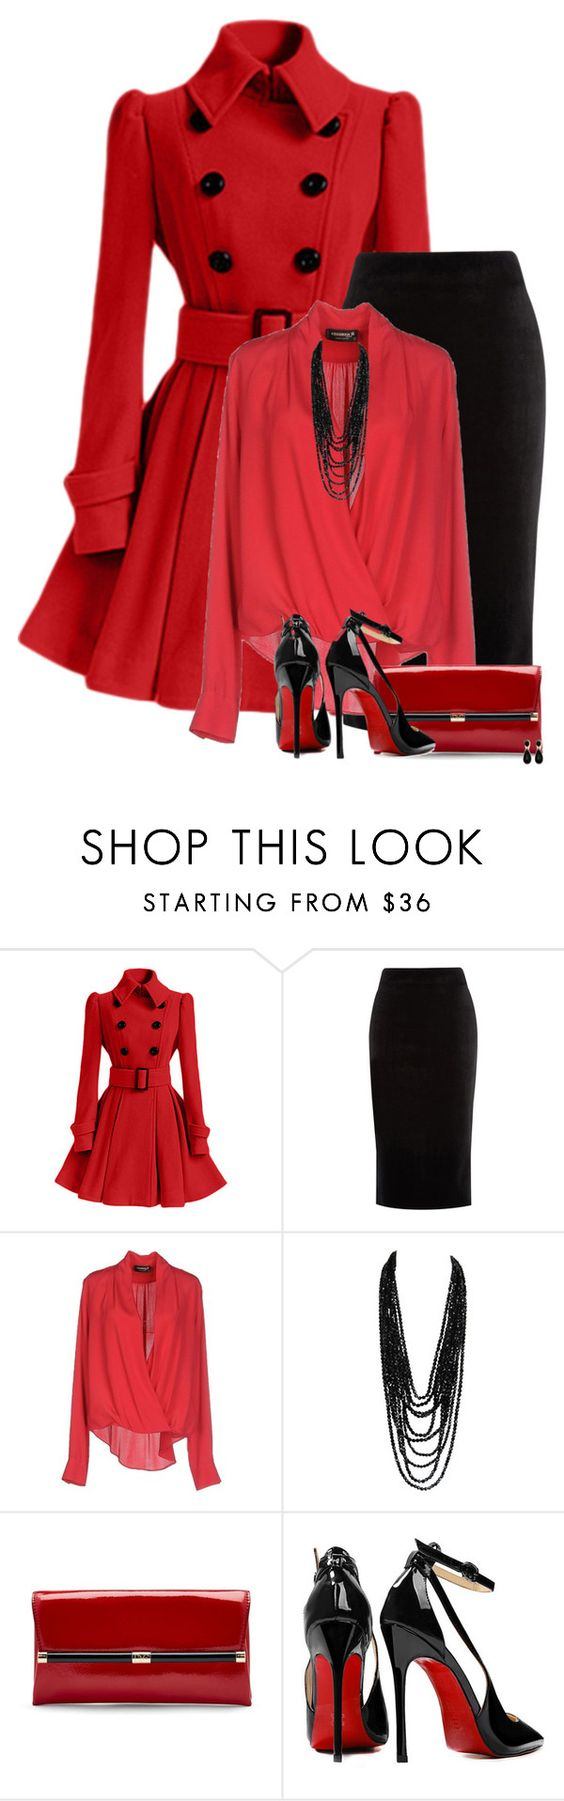 """""""Untitled #4805"""" by barbarapoole ❤ liked on Polyvore featuring Warehouse, A'biddikkia, Diane Von Furstenberg, Posh Girl, women's clothing, women, female, woman, misses and juniors"""